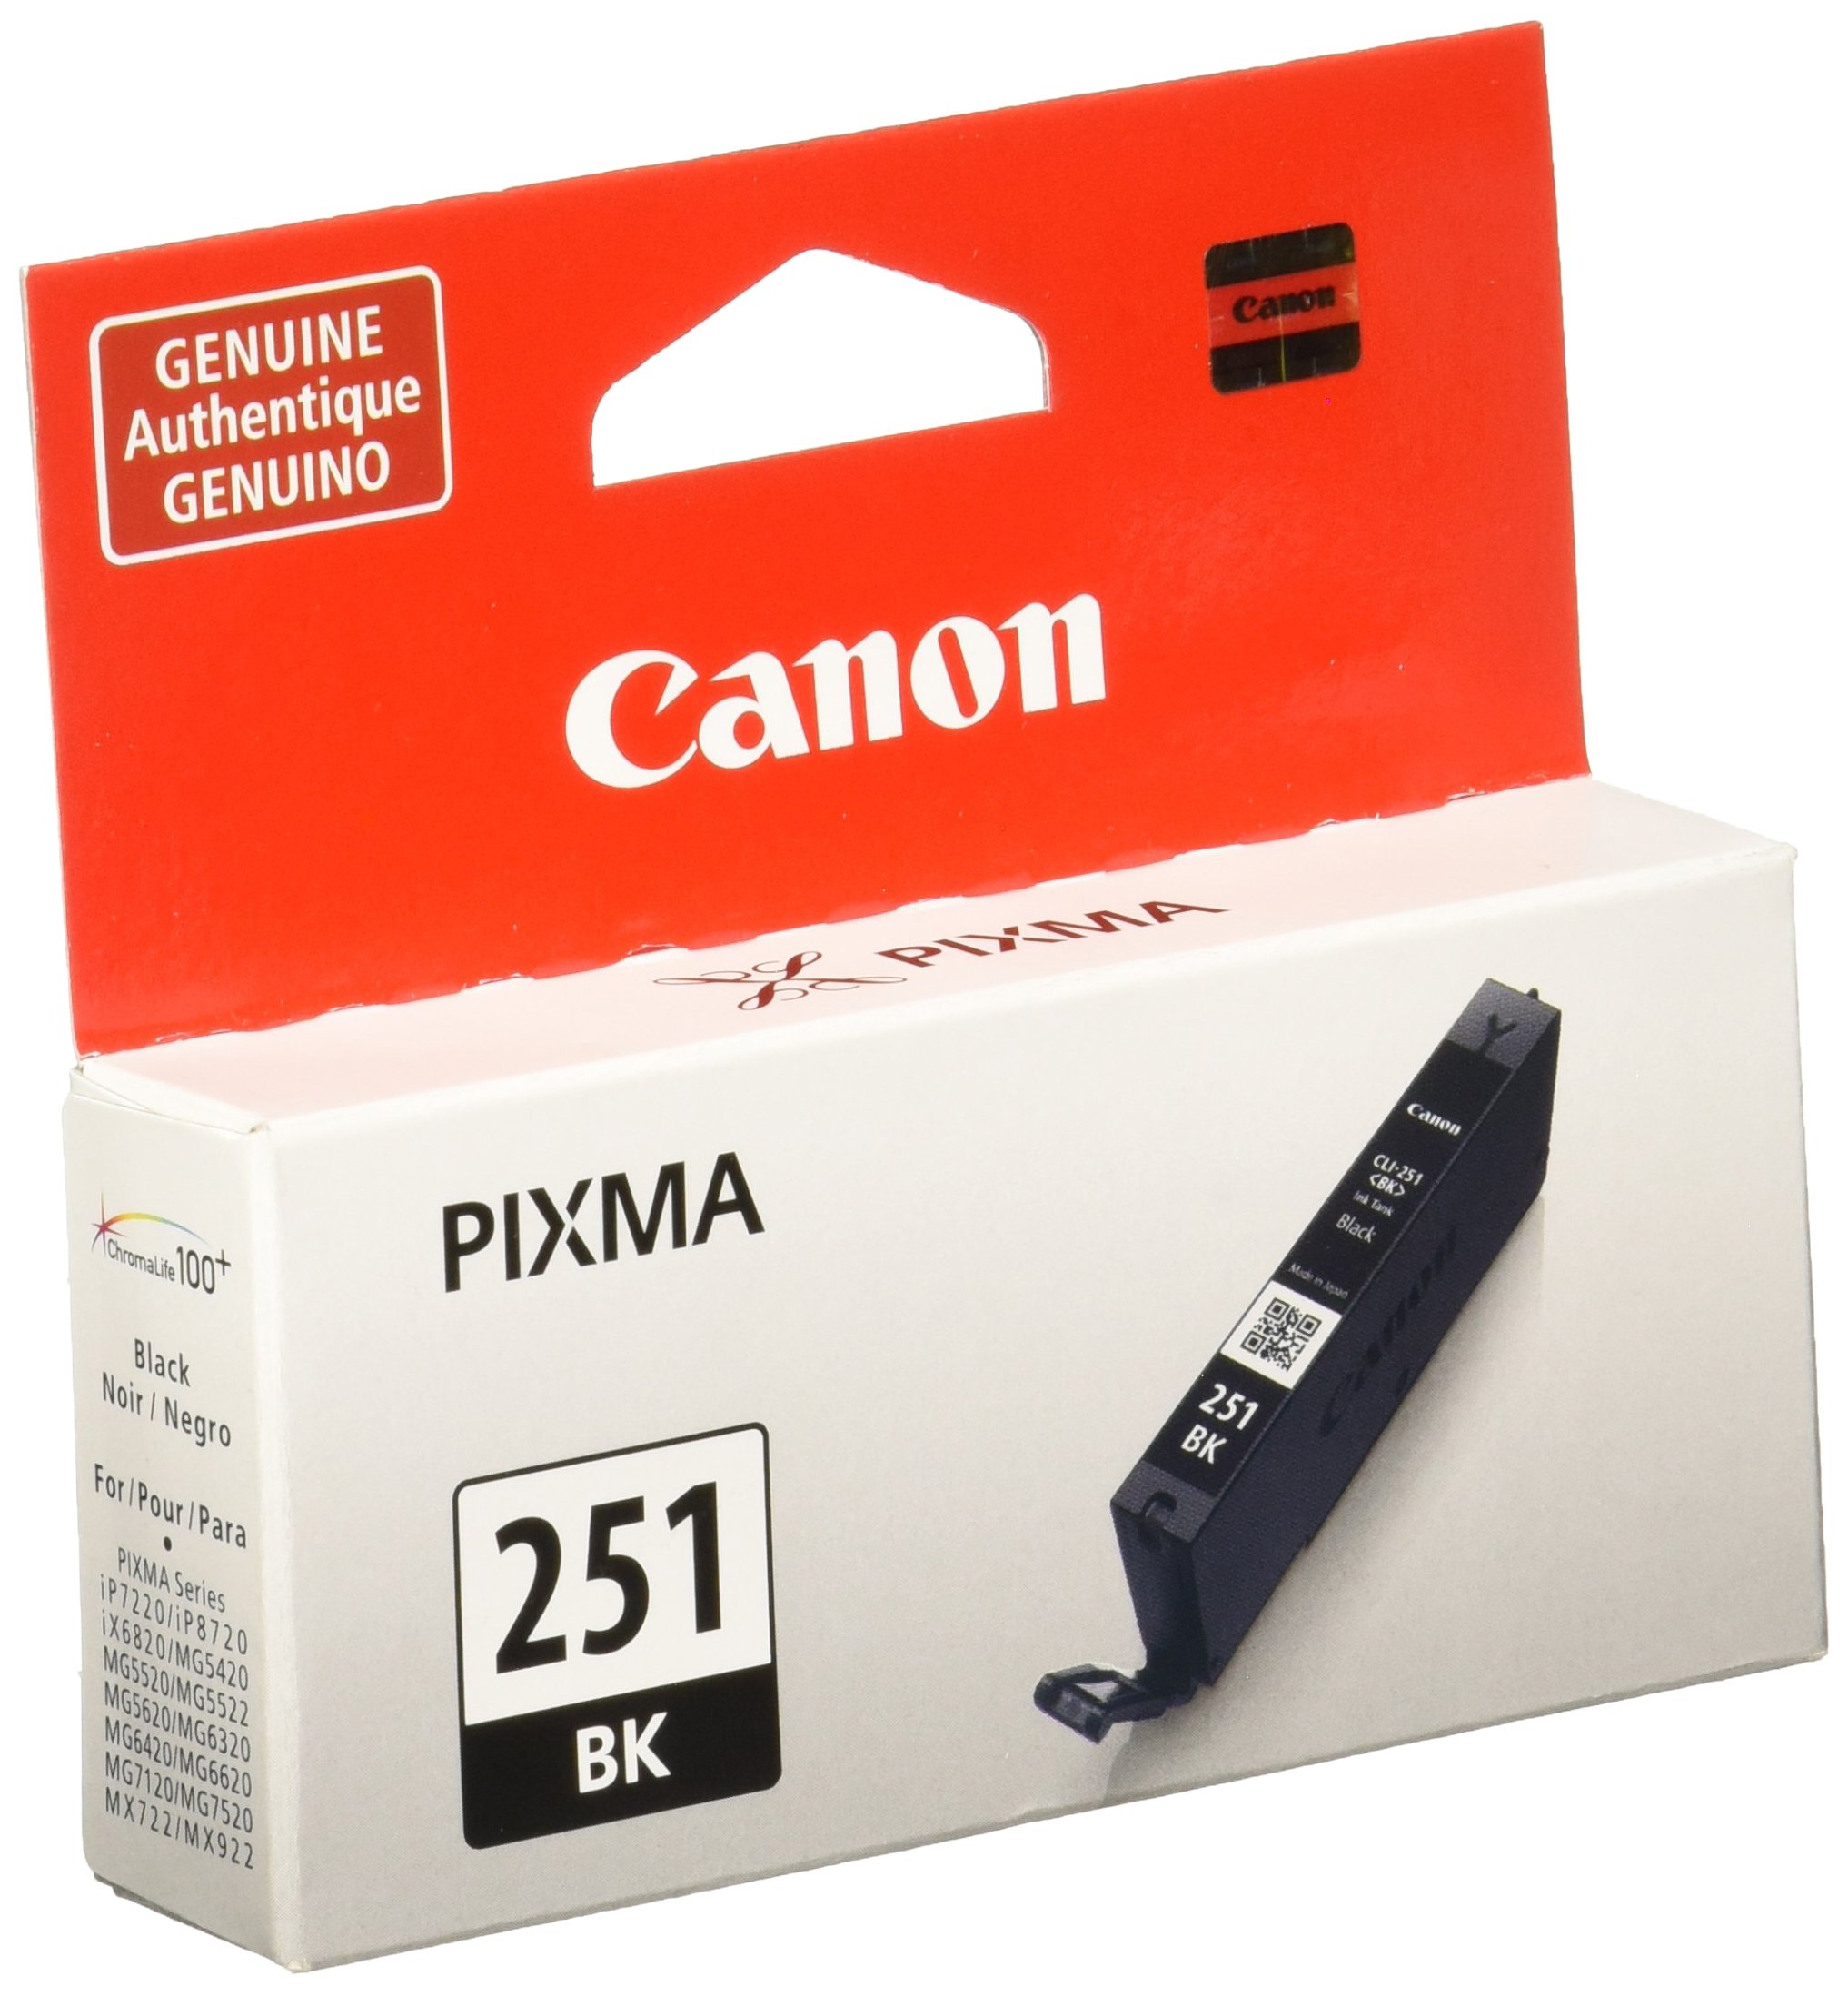 Canon CLI-251 Black Invidivudla Ink Tank, Compatible for MX922,iP8720,iX6820,MG7520, MG6420, MG5620, and MG5721 Printers